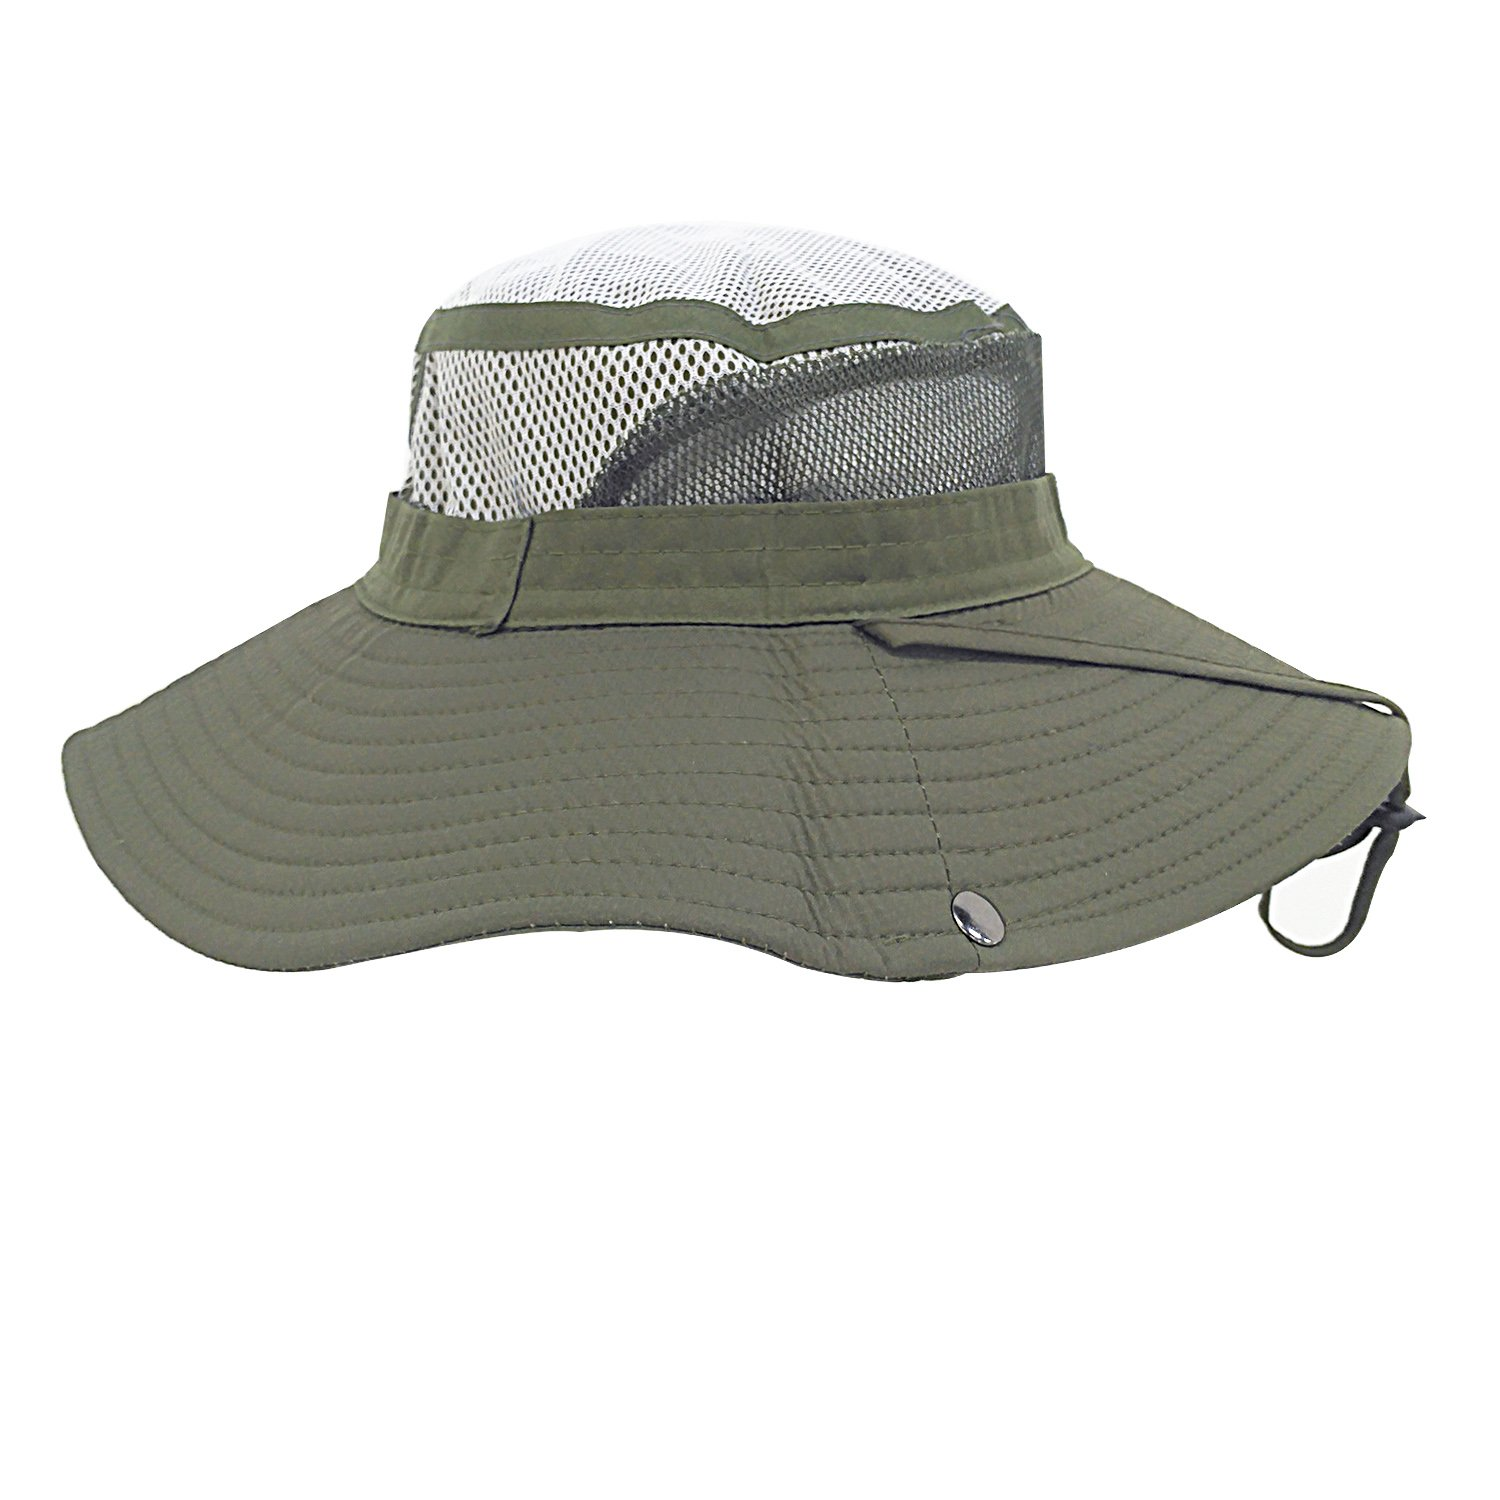 Fishing Hat and Sun Hat for Men//Women Safari Cap with Sun Protection Unisex Bucket Outdoor Boonie Hat